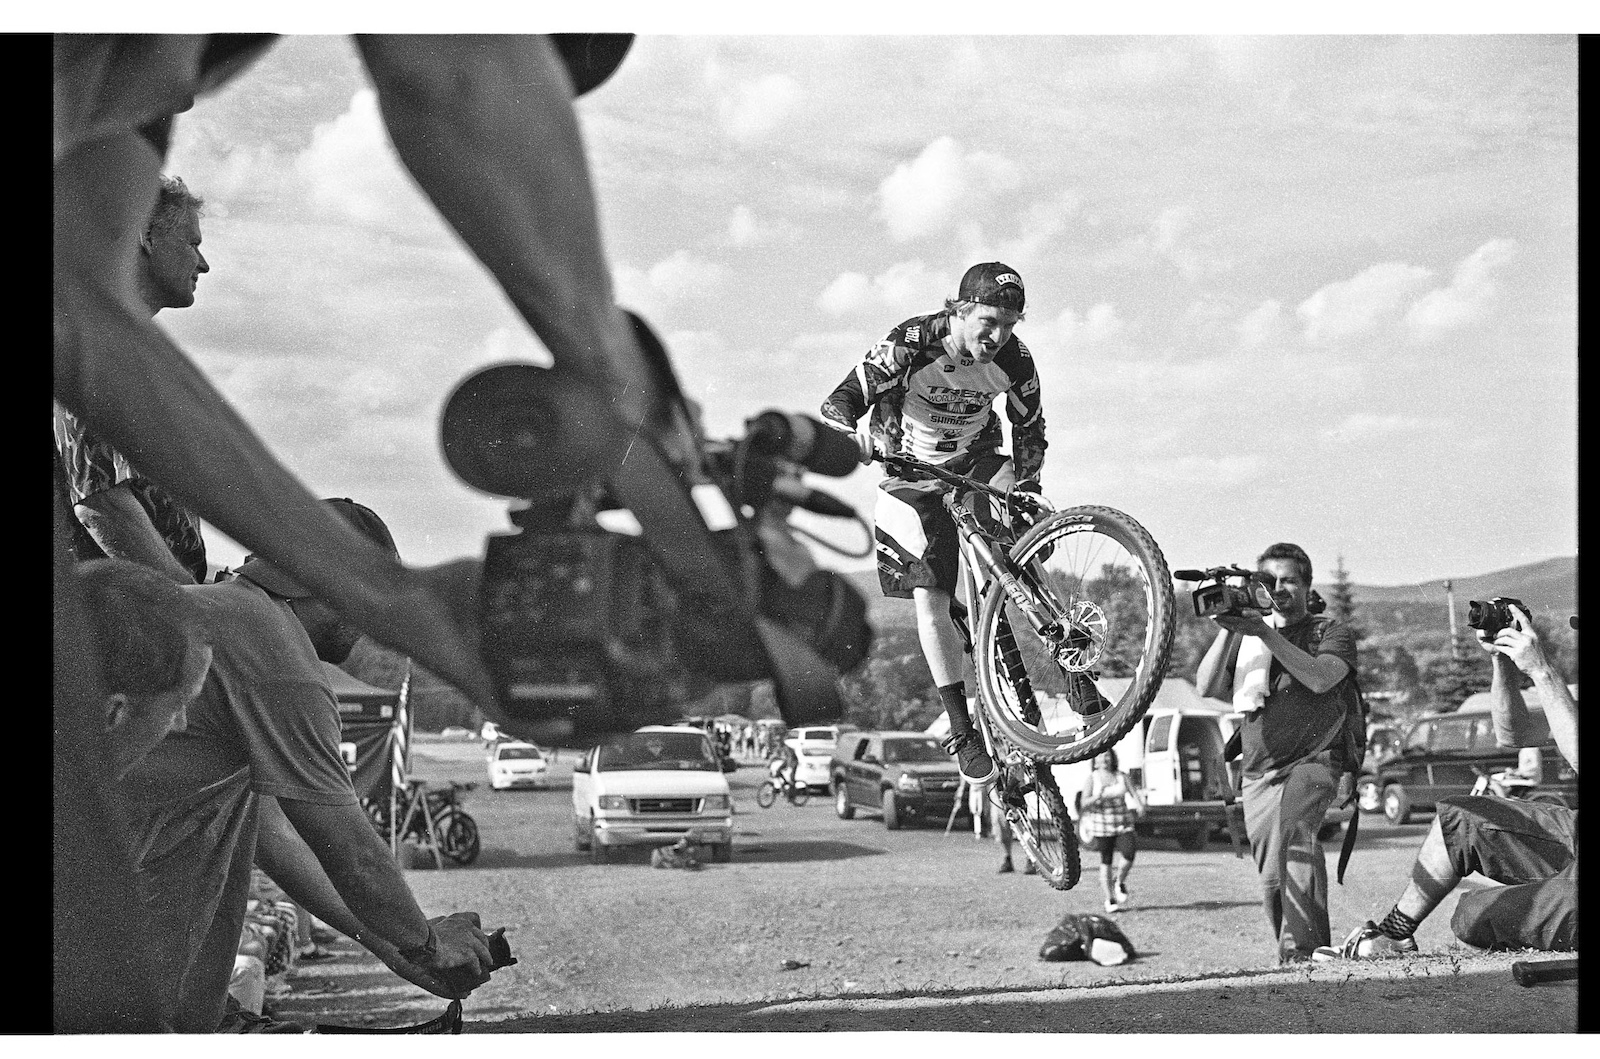 A little bank between the pits and the parking was used as a kicker for the best trick contest. Aaron Gwin trying to pull a whip. Shot with LEICA M6 35mm f 1.4 Summilux